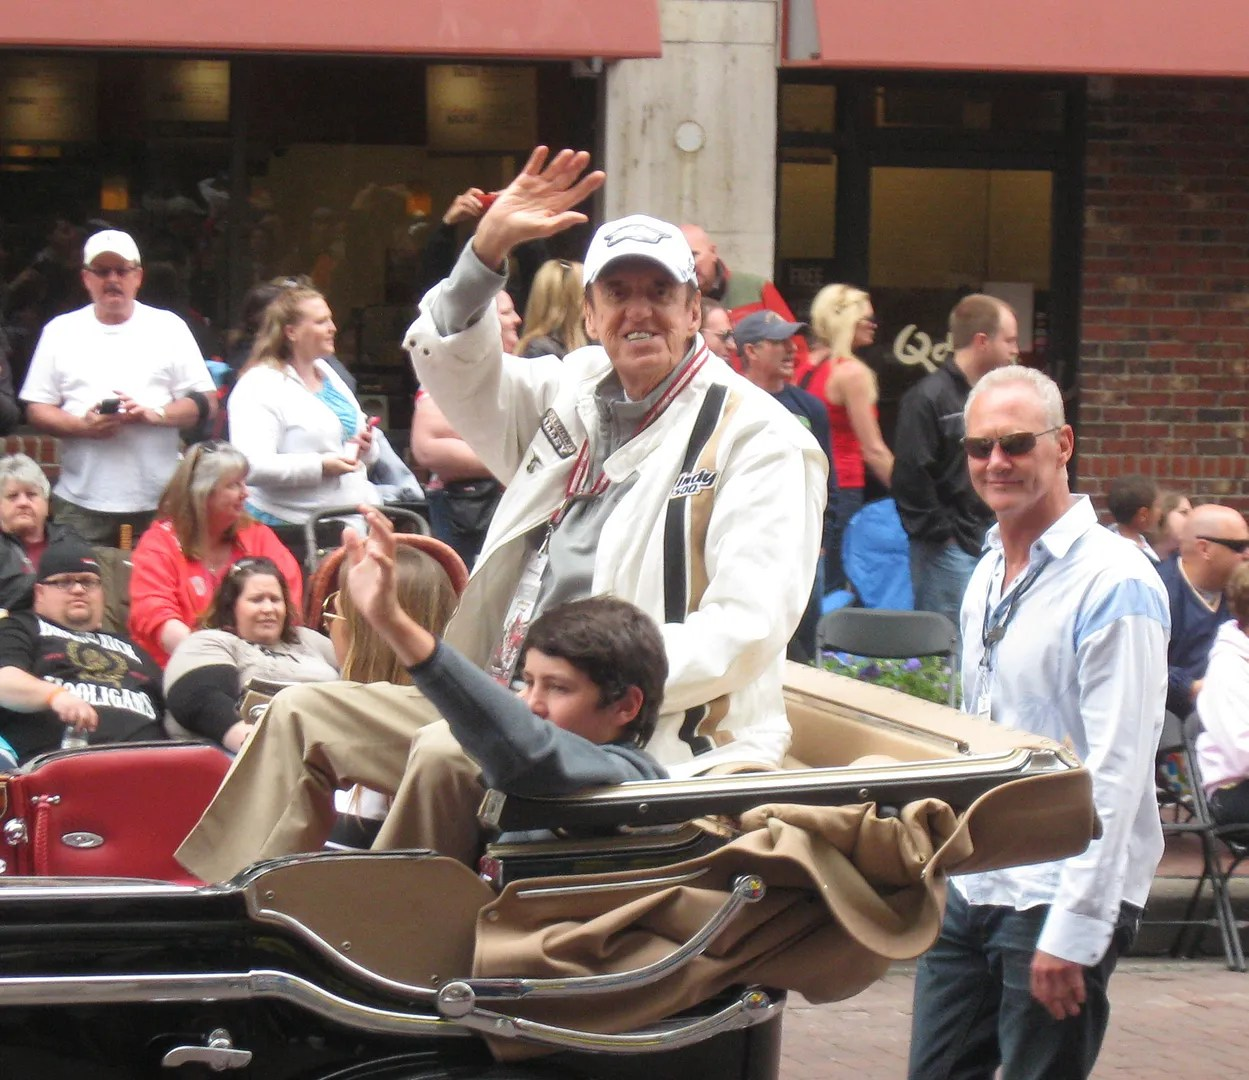 Jim Nabors, Gomer Pyle, 500 Festival Parade, Indianapolis, 2013